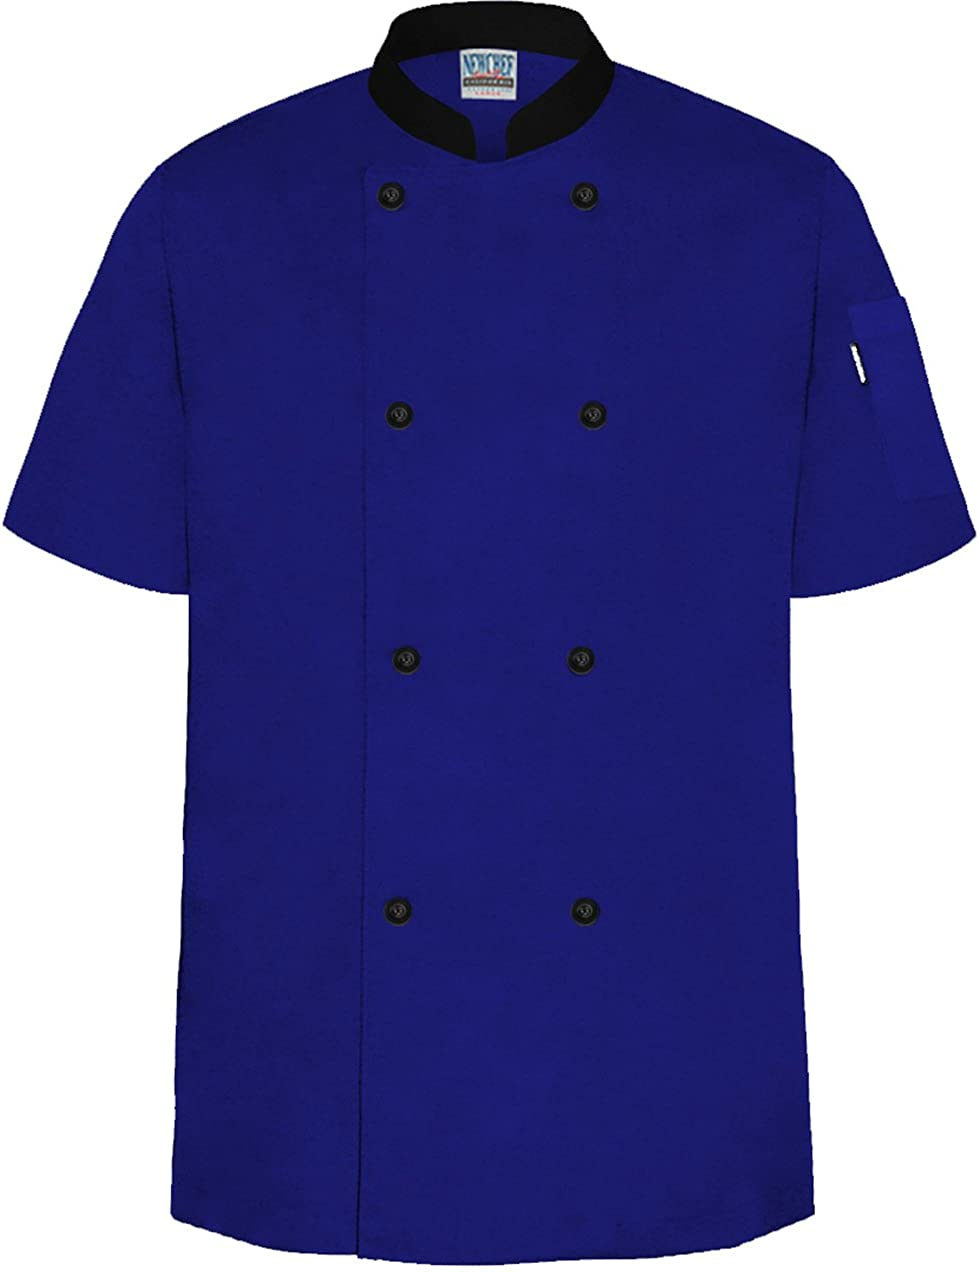 Newchef Fashion Royal Blue/Black Chef Jacket Contrast Collar Short Sleeves